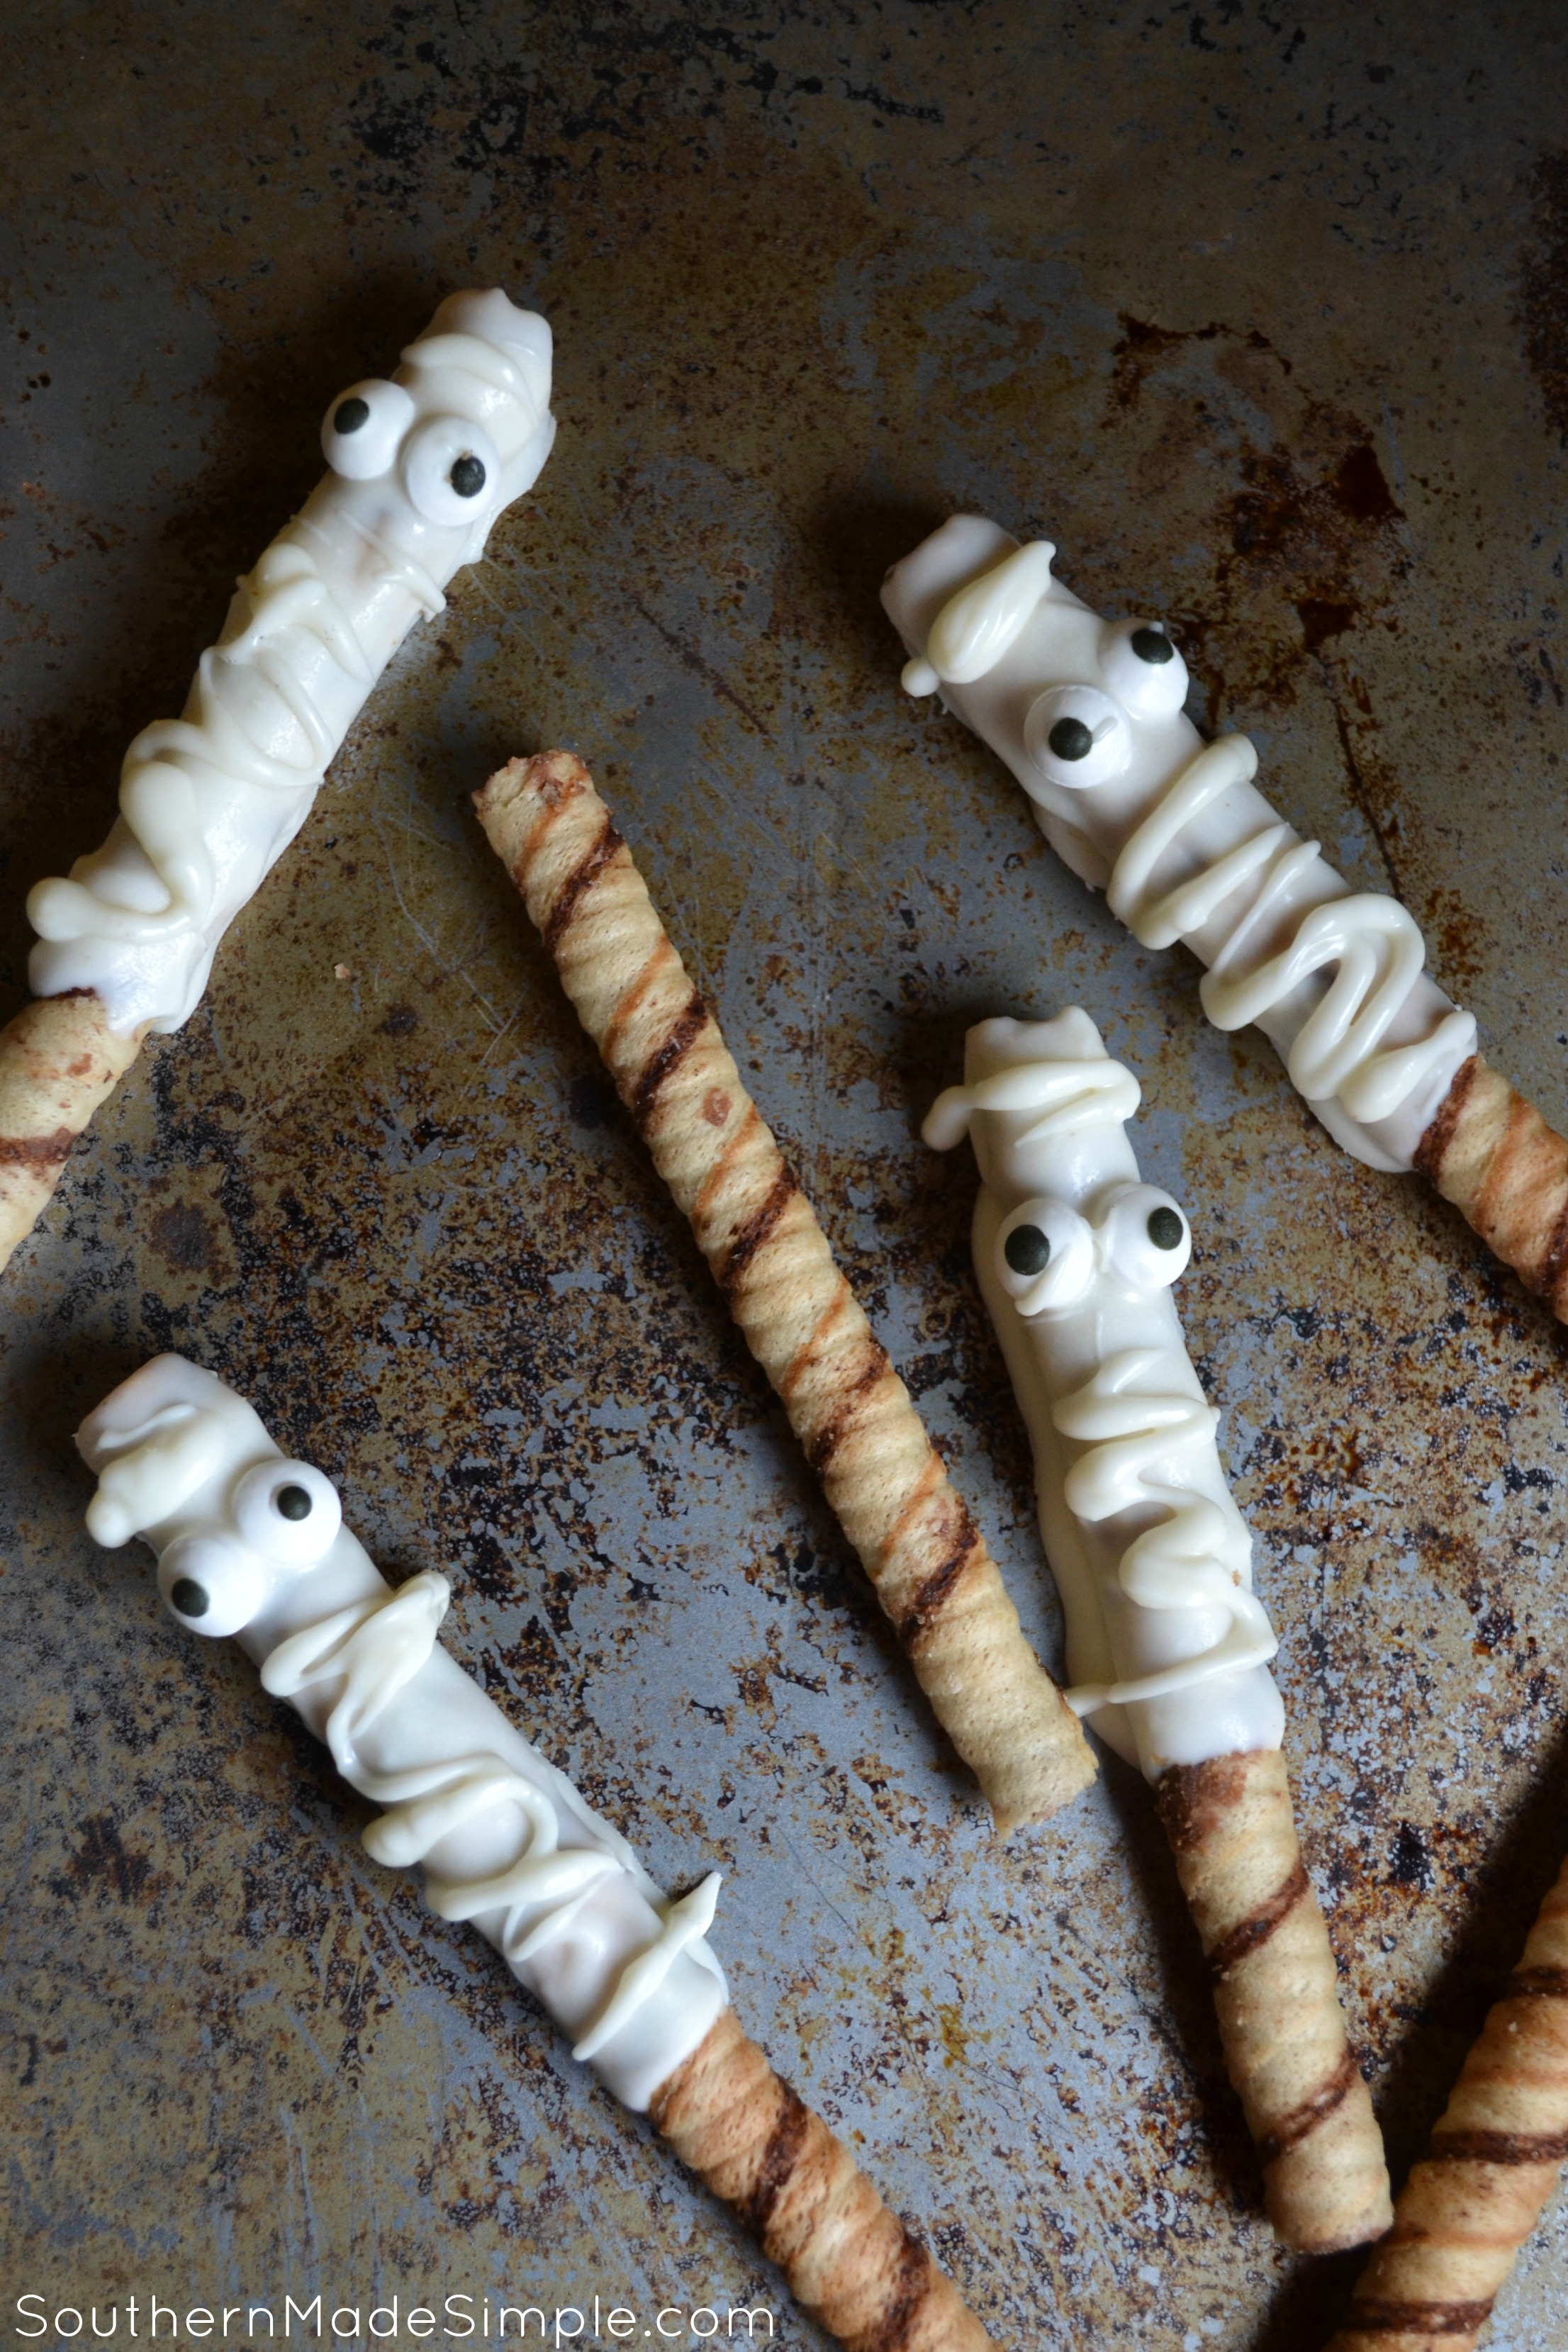 Halloween Mummy Treats - Chocolate dipped hazelnut prioulines mummified with Halloween goodness!